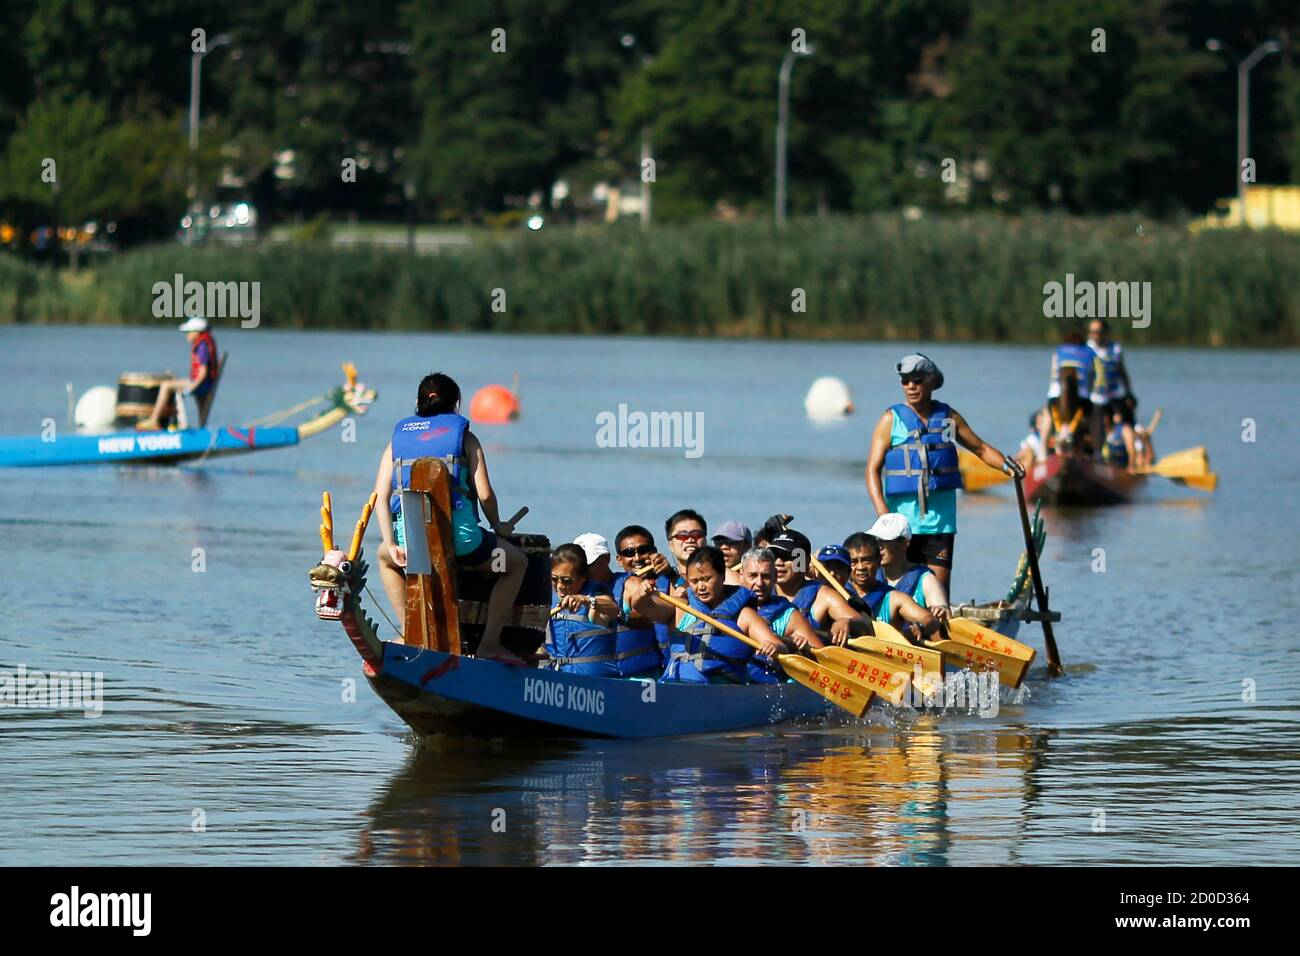 Competitors paddle during the 24th annual Hong Kong Dragon Boat Festival at Meadow Lake in the Queens borough of New York City, August 9, 2014.  REUTERS/Eduardo Munoz (UNITED STATES - Tags: SPORT SOCIETY) Stock Photo